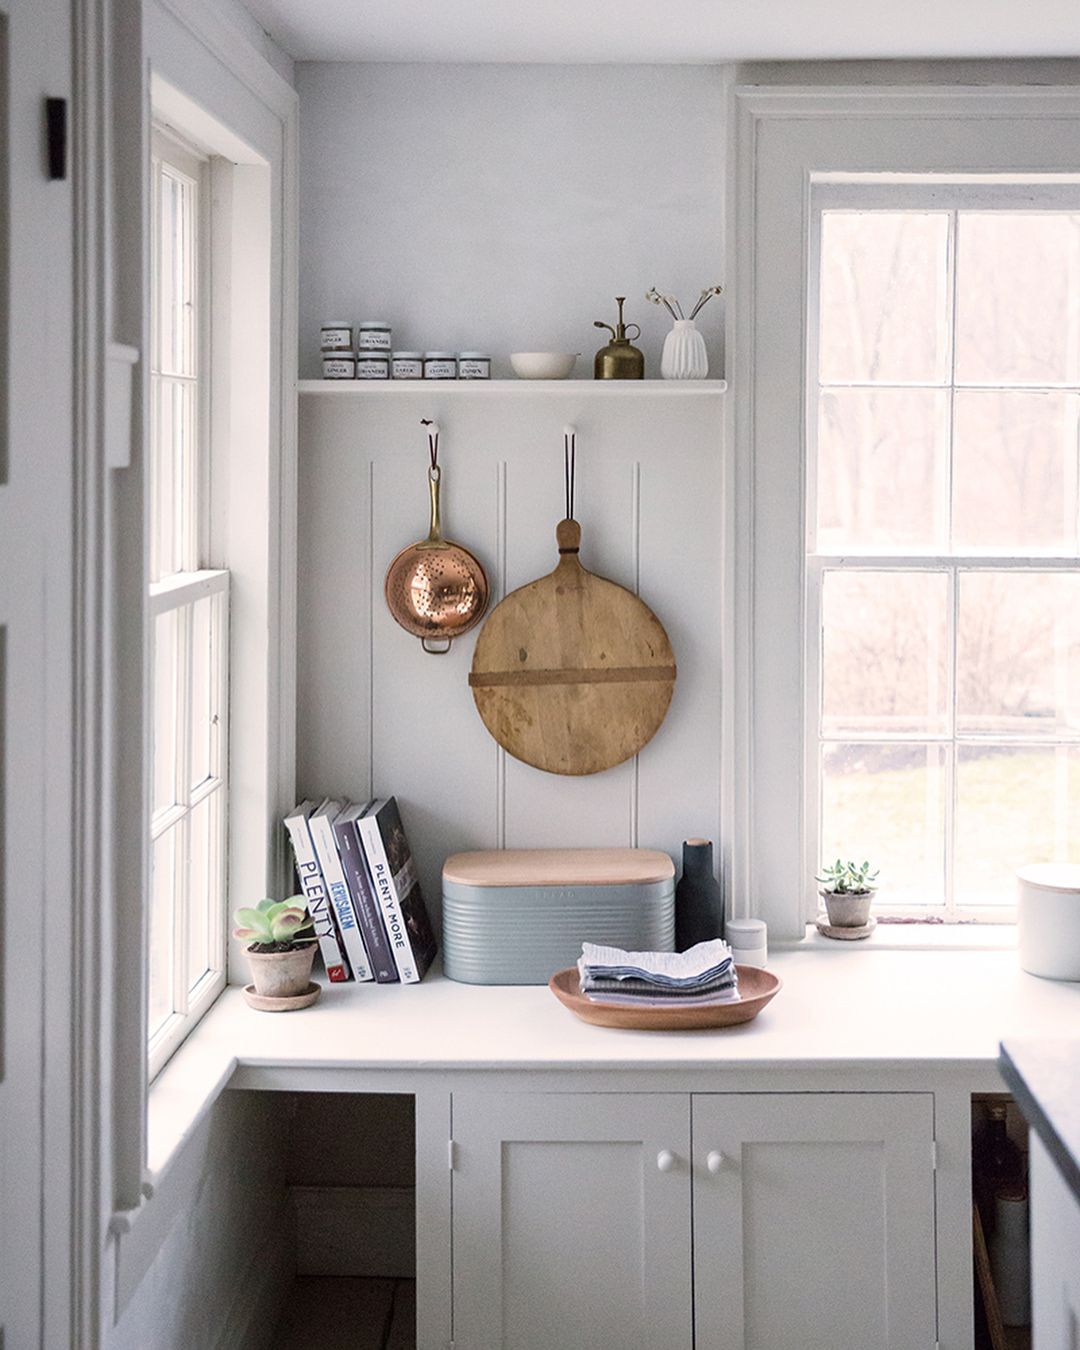 Paint Color Olympic Mountain By Benjamin Moore Design By Tara Mangini Percy Bright Jerseyicecreamco On Instag House Flooring Interior Wood Paneling Home